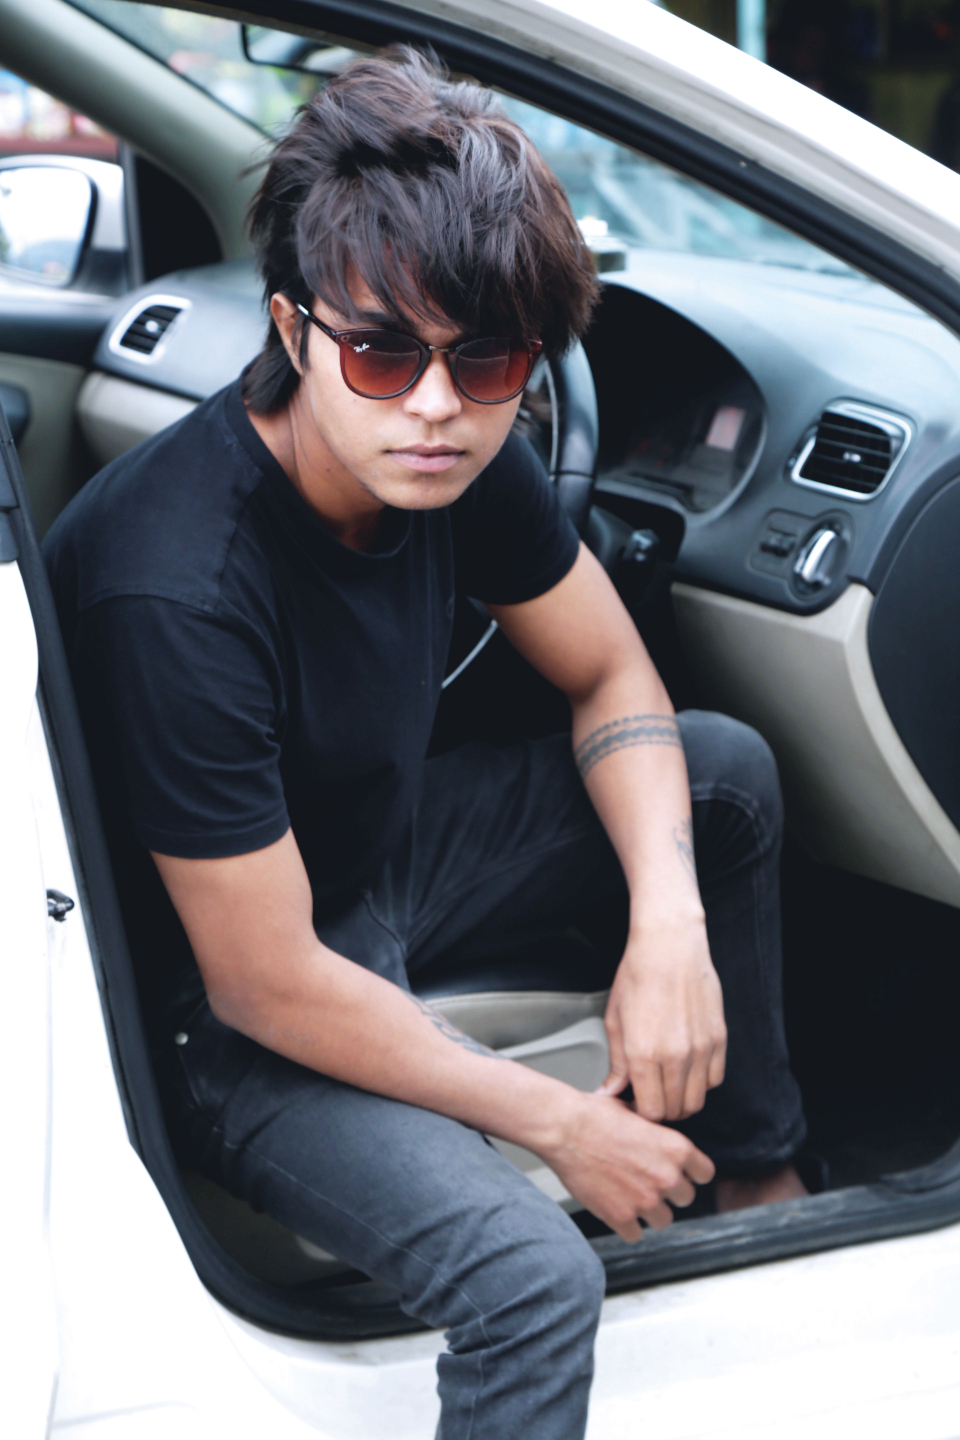 car summer handsome fun young guy boy man people sunglasses fashion long hair automotive model